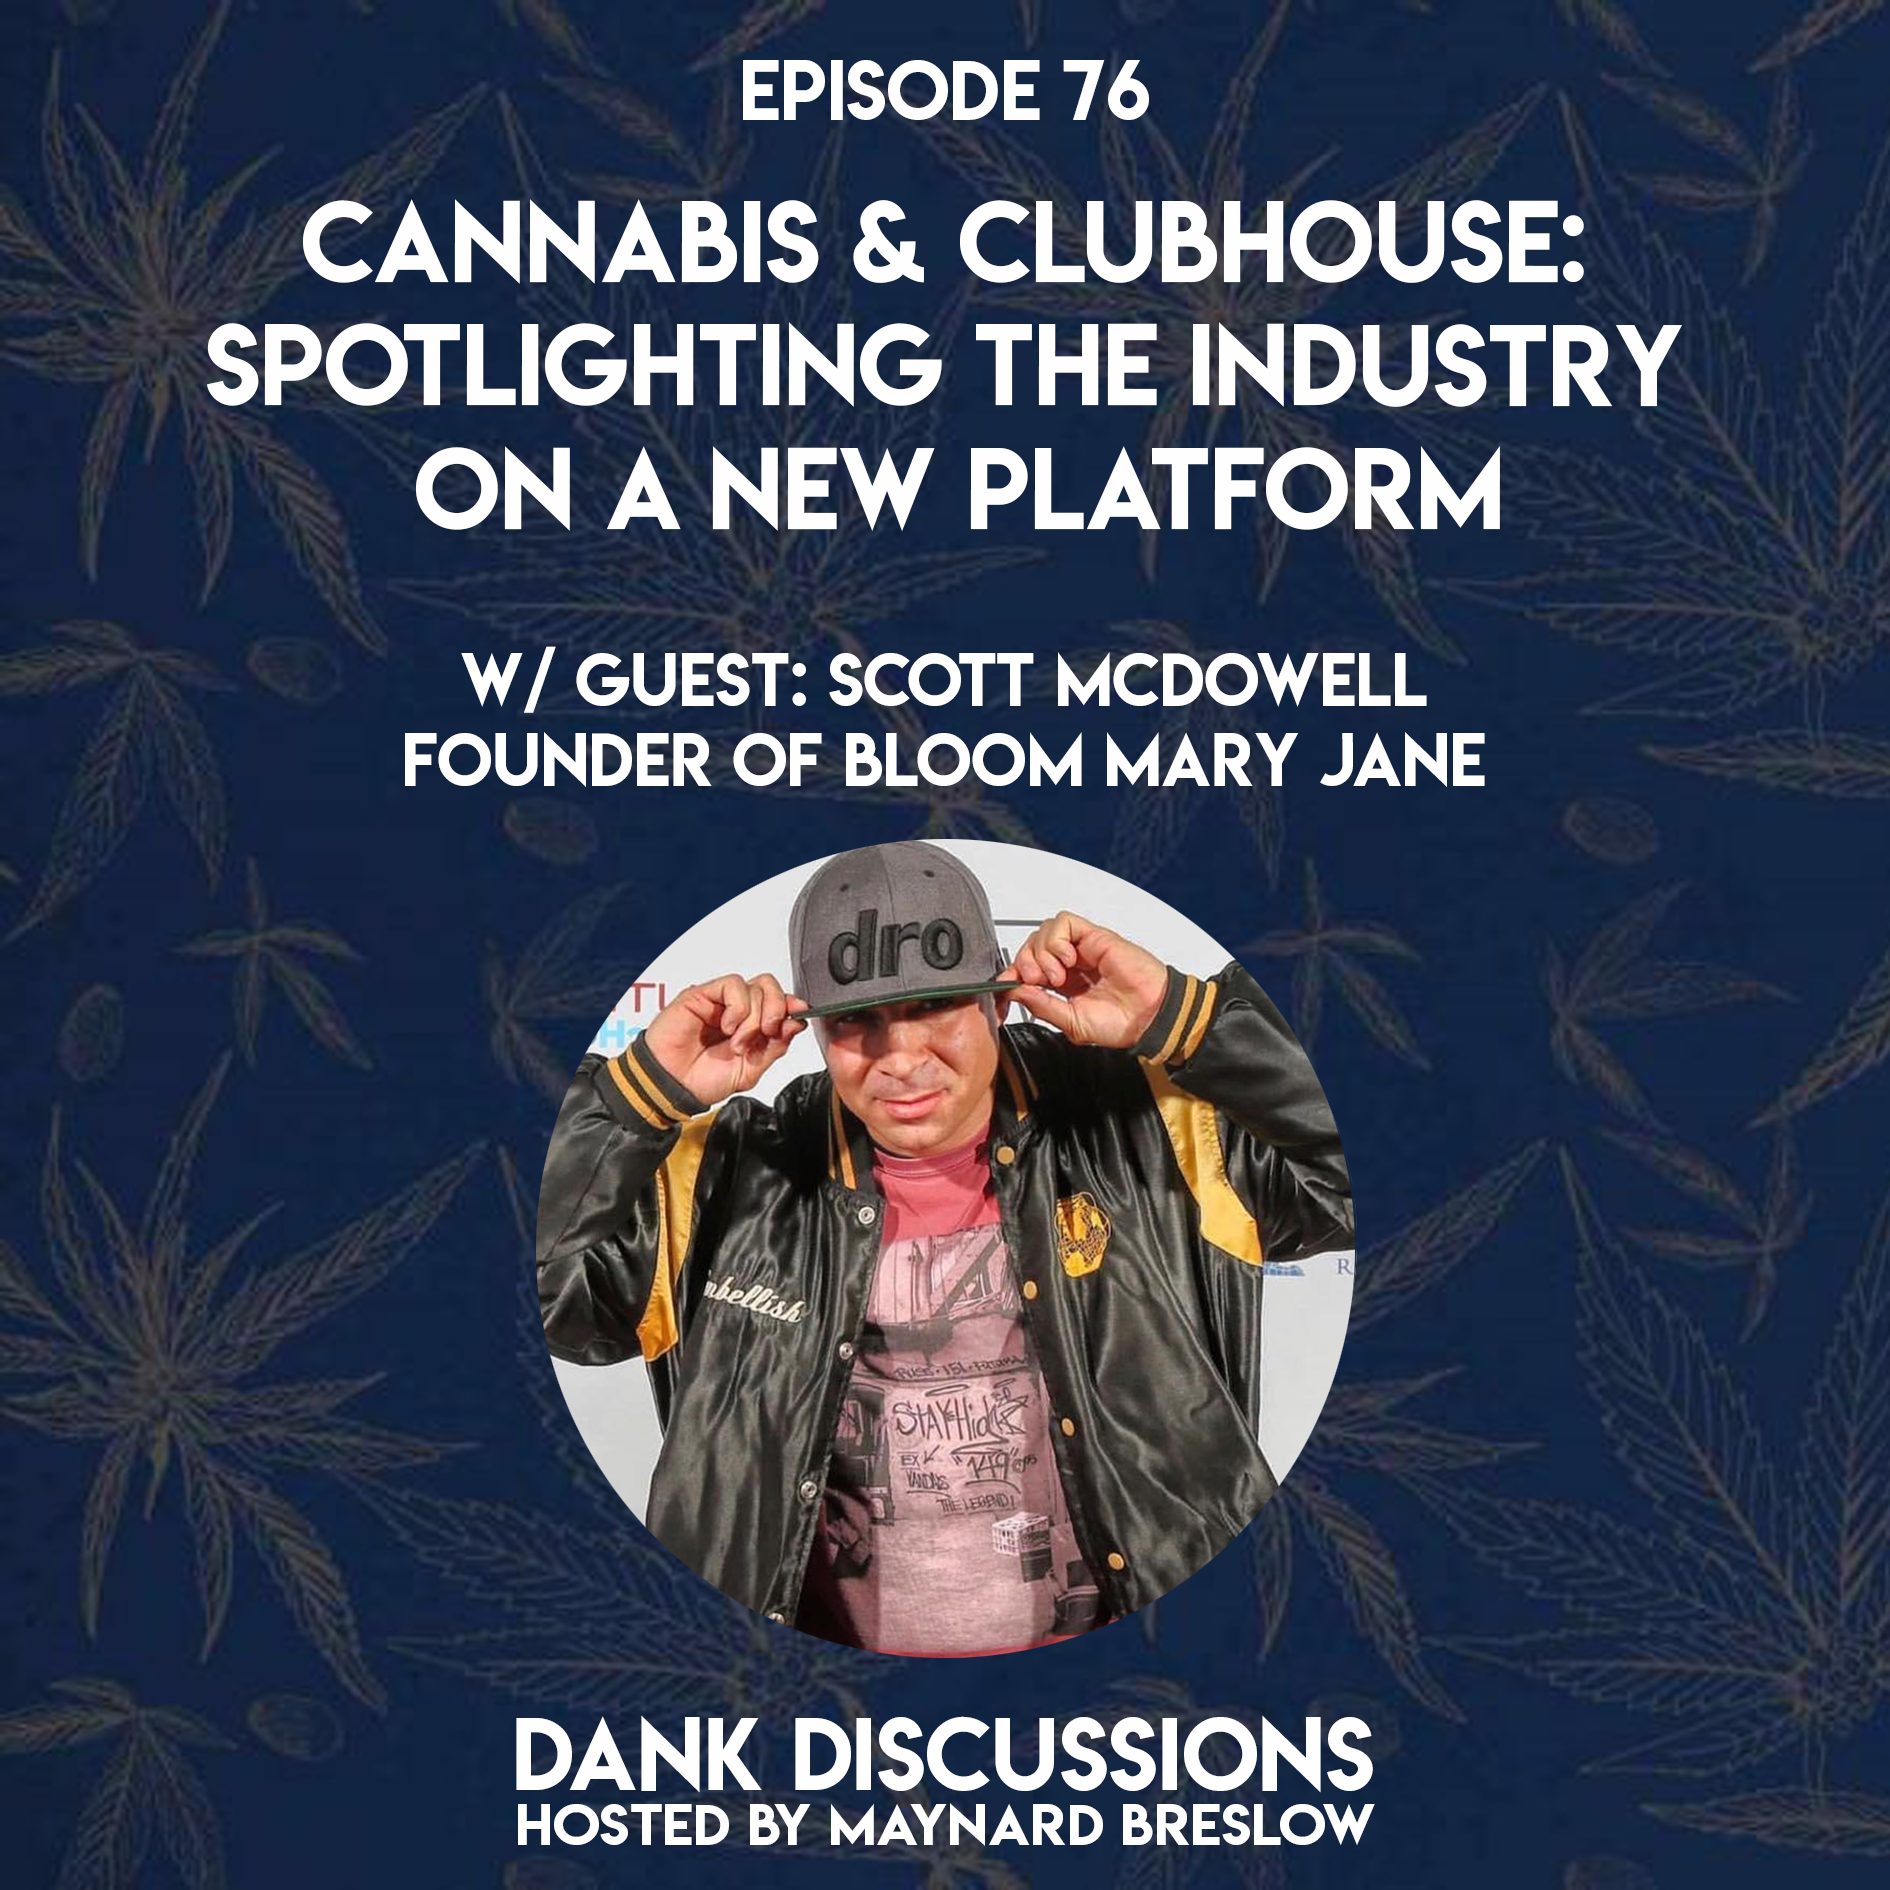 Cannabis & Clubhouse: Spotlighting the Industry on A New Platform